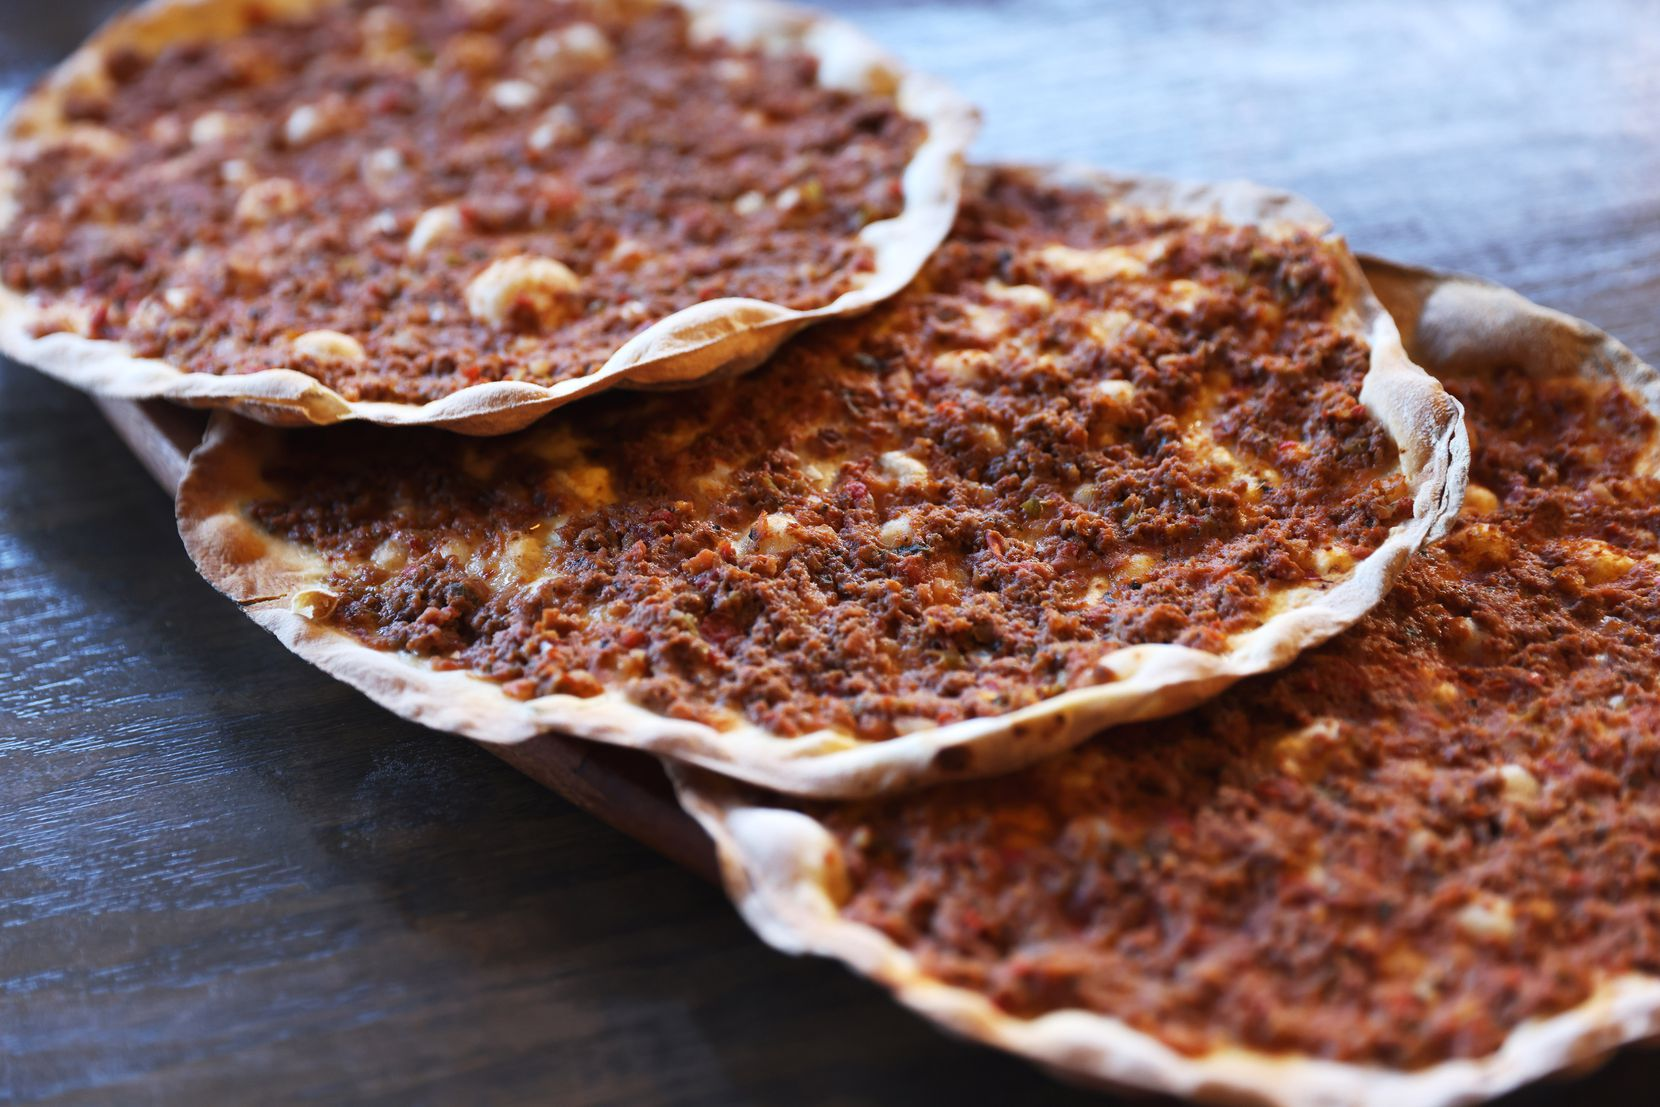 Lahmacuns have a very thin crust and are topped with a mixture of minced beef, tomatoes, onion, bell pepper and parsley. They do not include cheese.